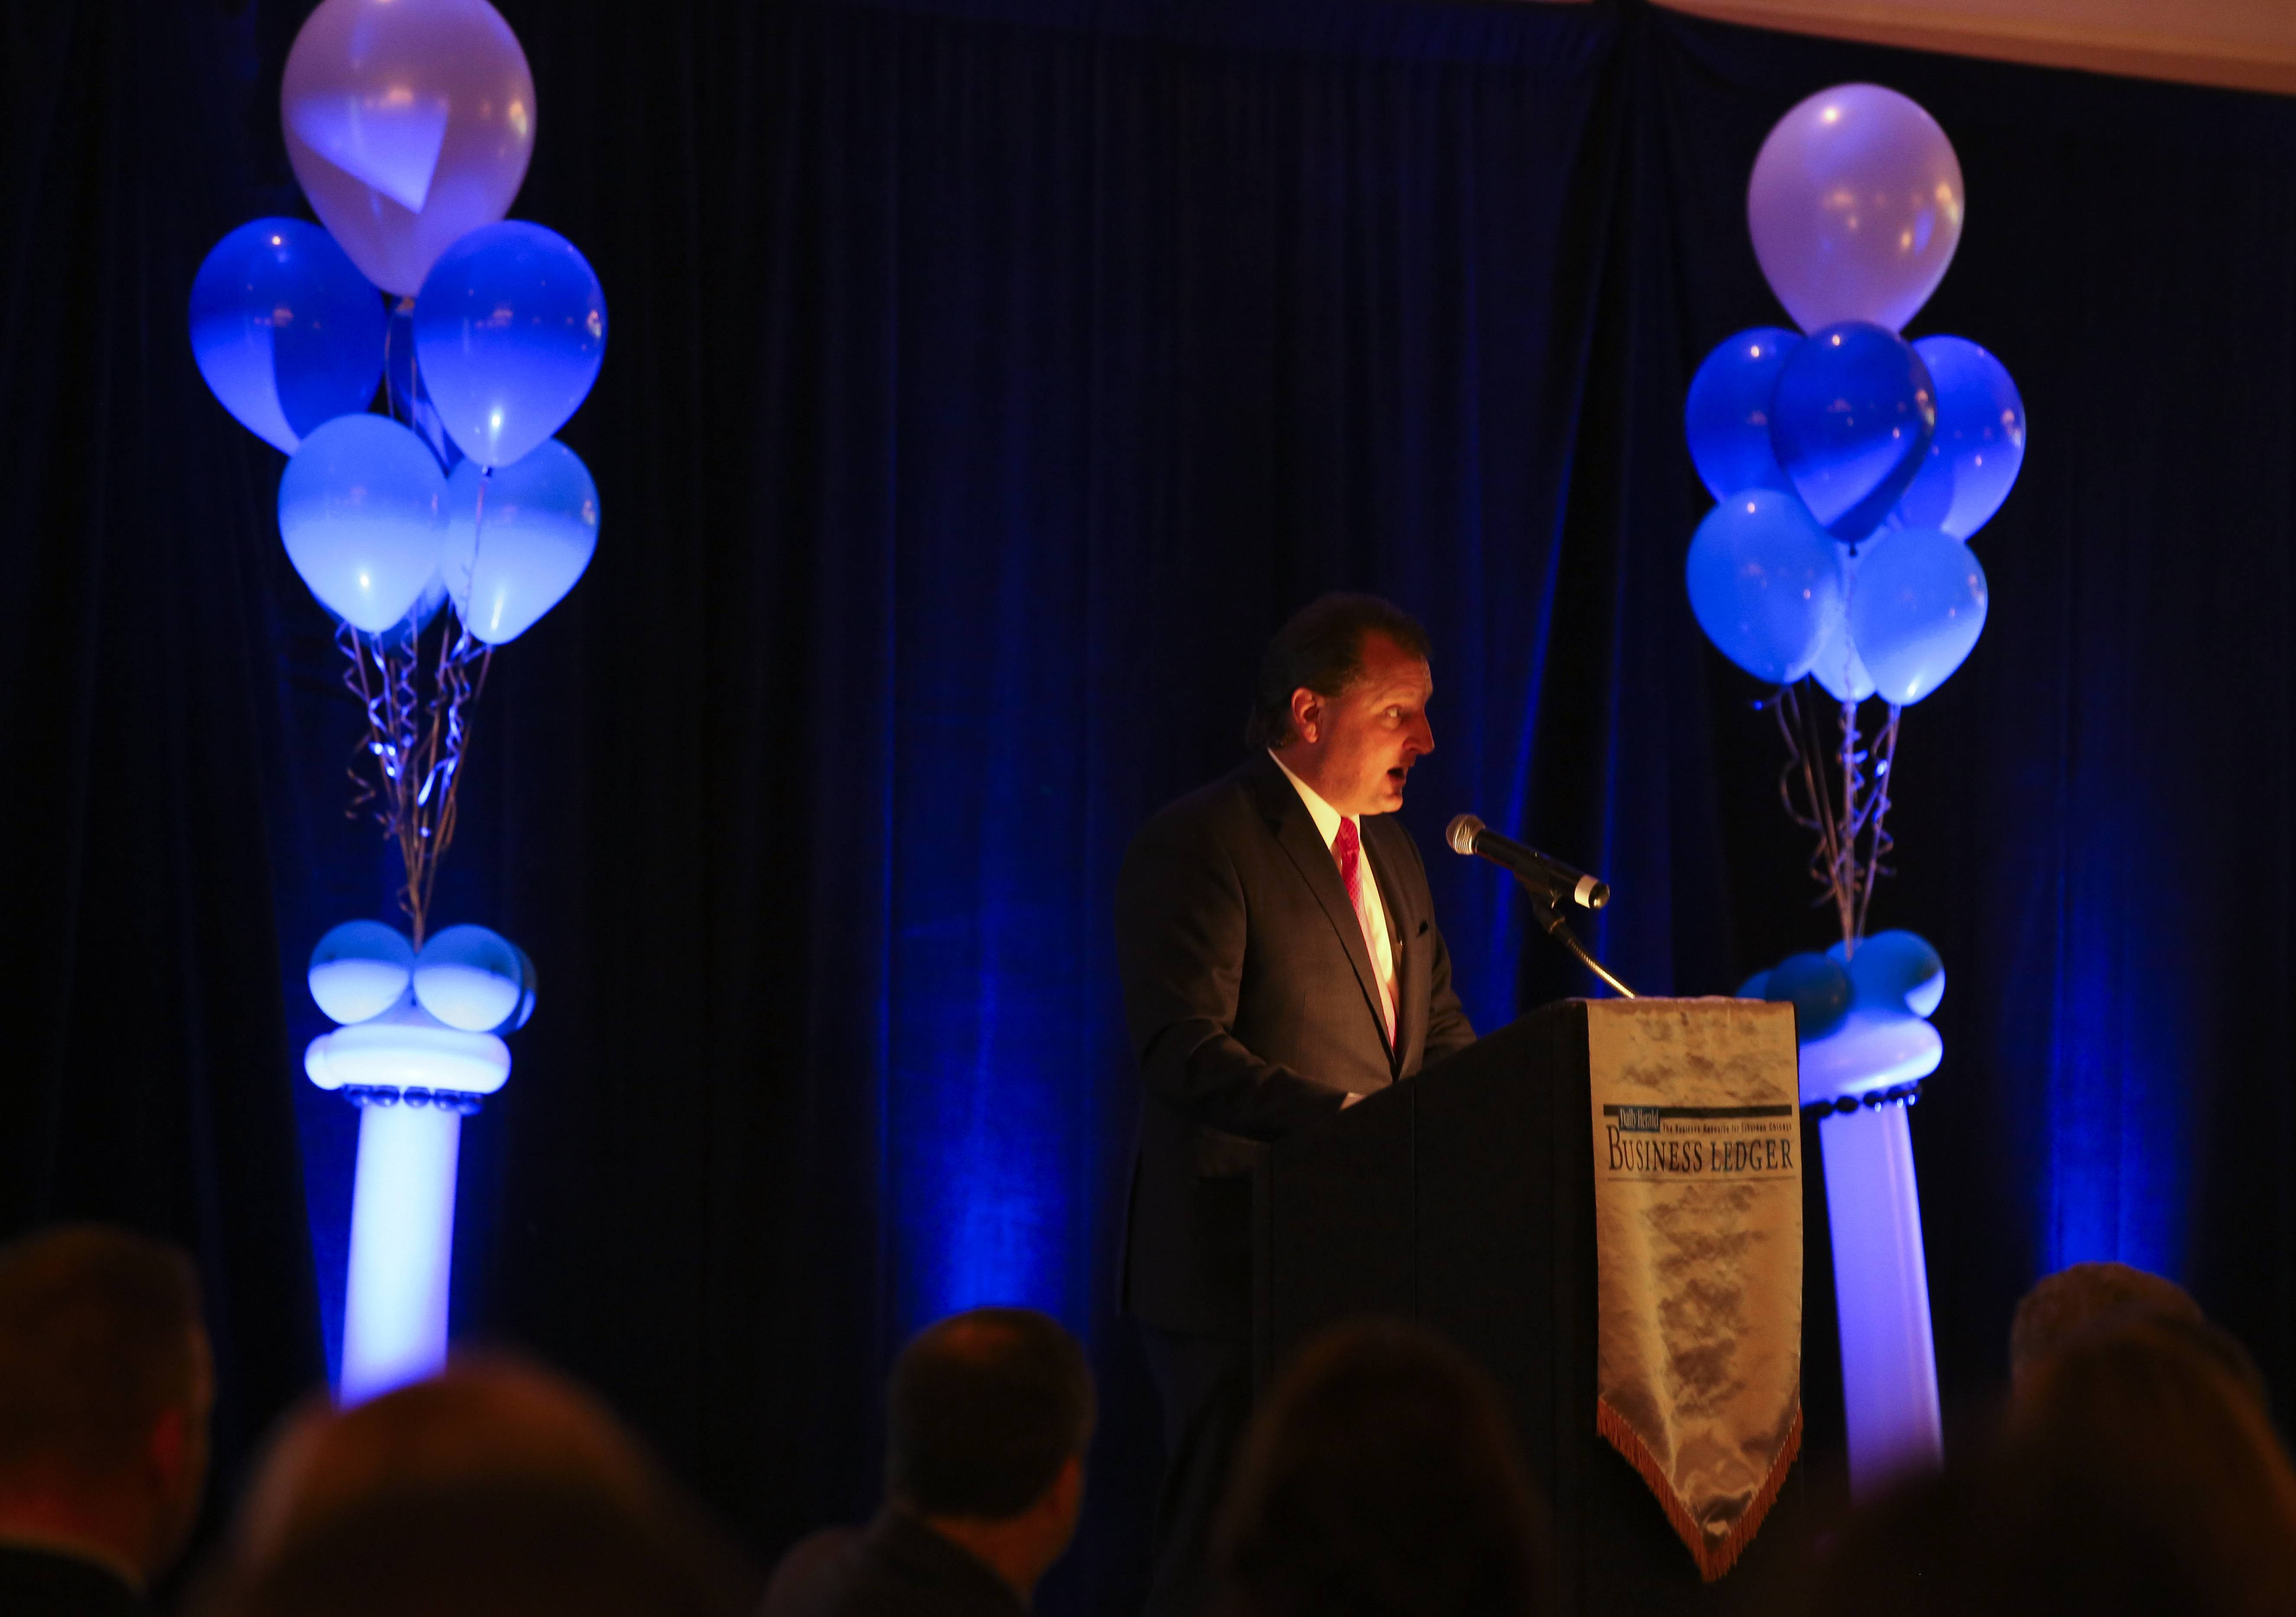 Bev Horne/bhorne@dailyherald.com Peter Burke, president of Best Companies Group, gives a talk at the Best Places to Work in Illinois ceremony at Abbington Banquets in Glen Ellyn.